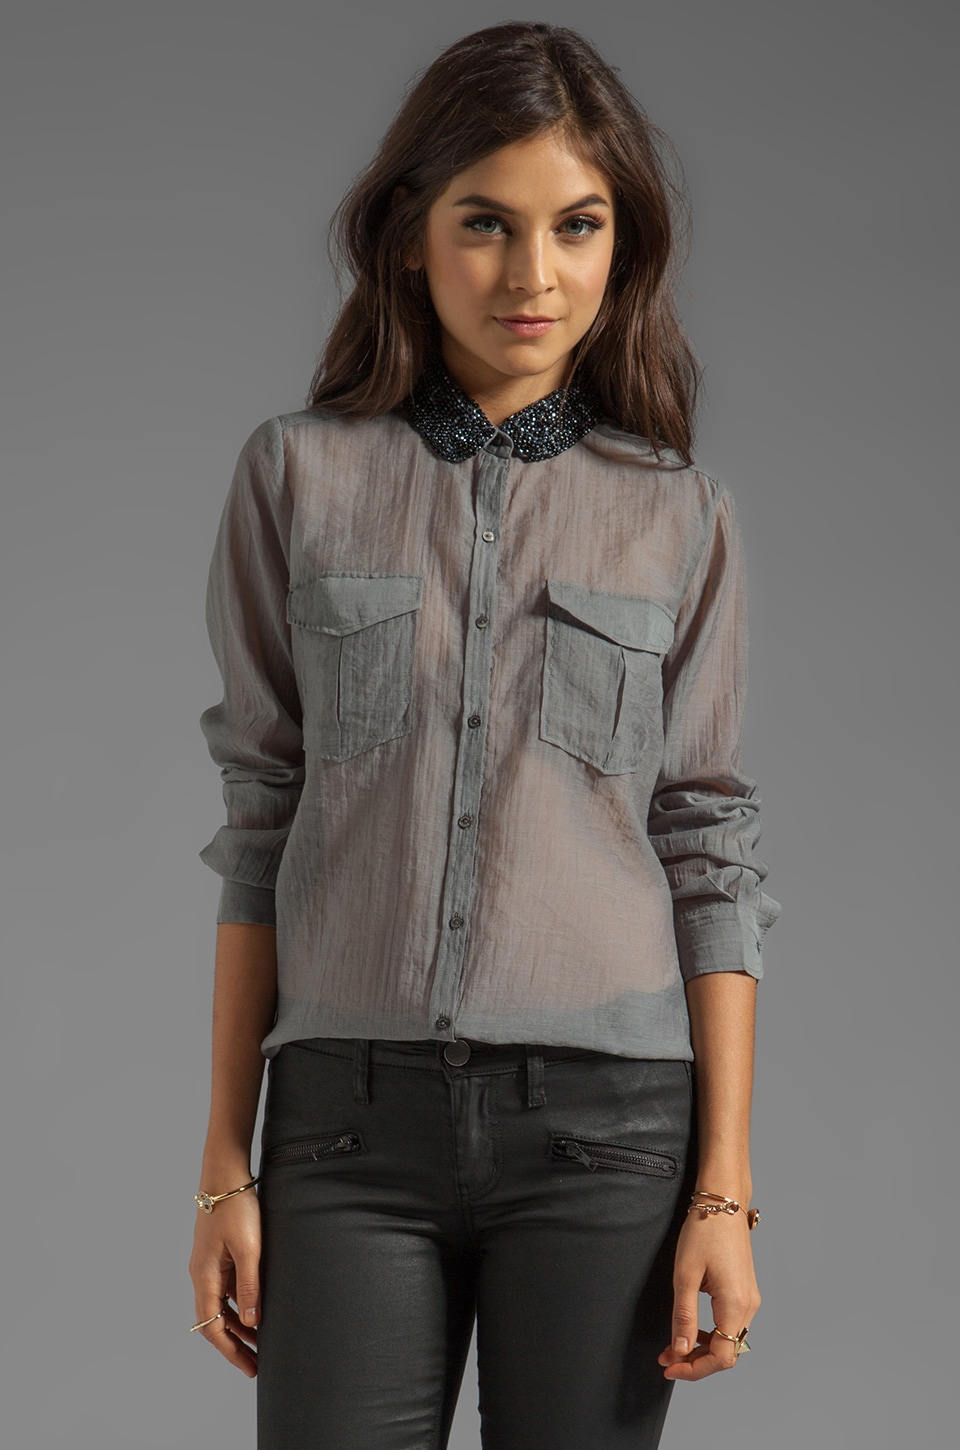 Maison Scotch Button Up Shirt with Embellished Collar in Grey